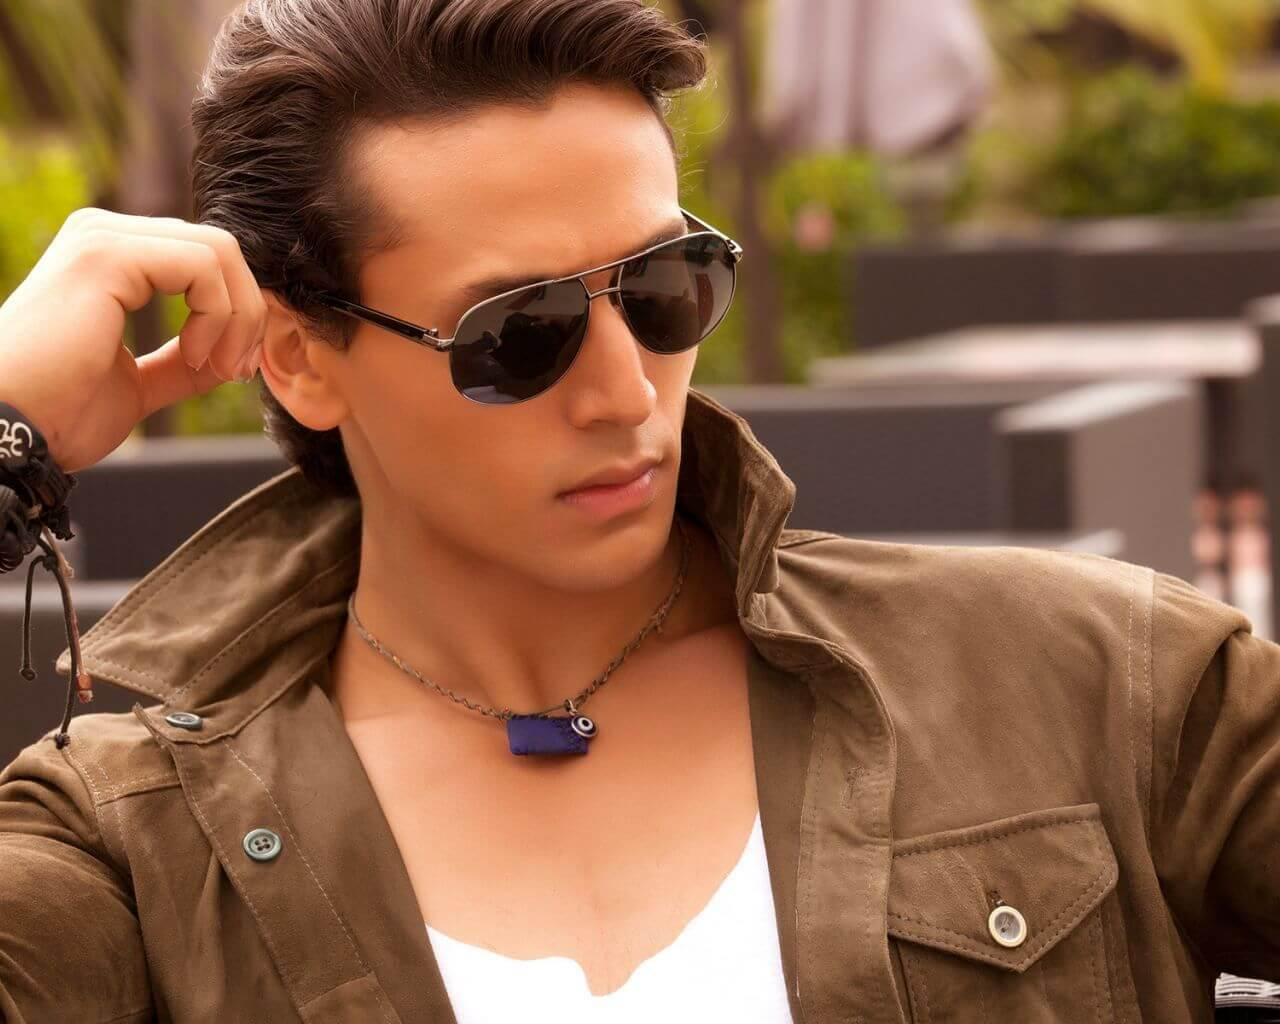 Tiger Shroff Age, Photos(image), Song, Movie, Height, Girlfriend, Sister, Date Of Birth, Net Worth, Biography, Education, Awards, Instagram, Twitter, Facebook, Wiki, Imdb, Youtube (22)